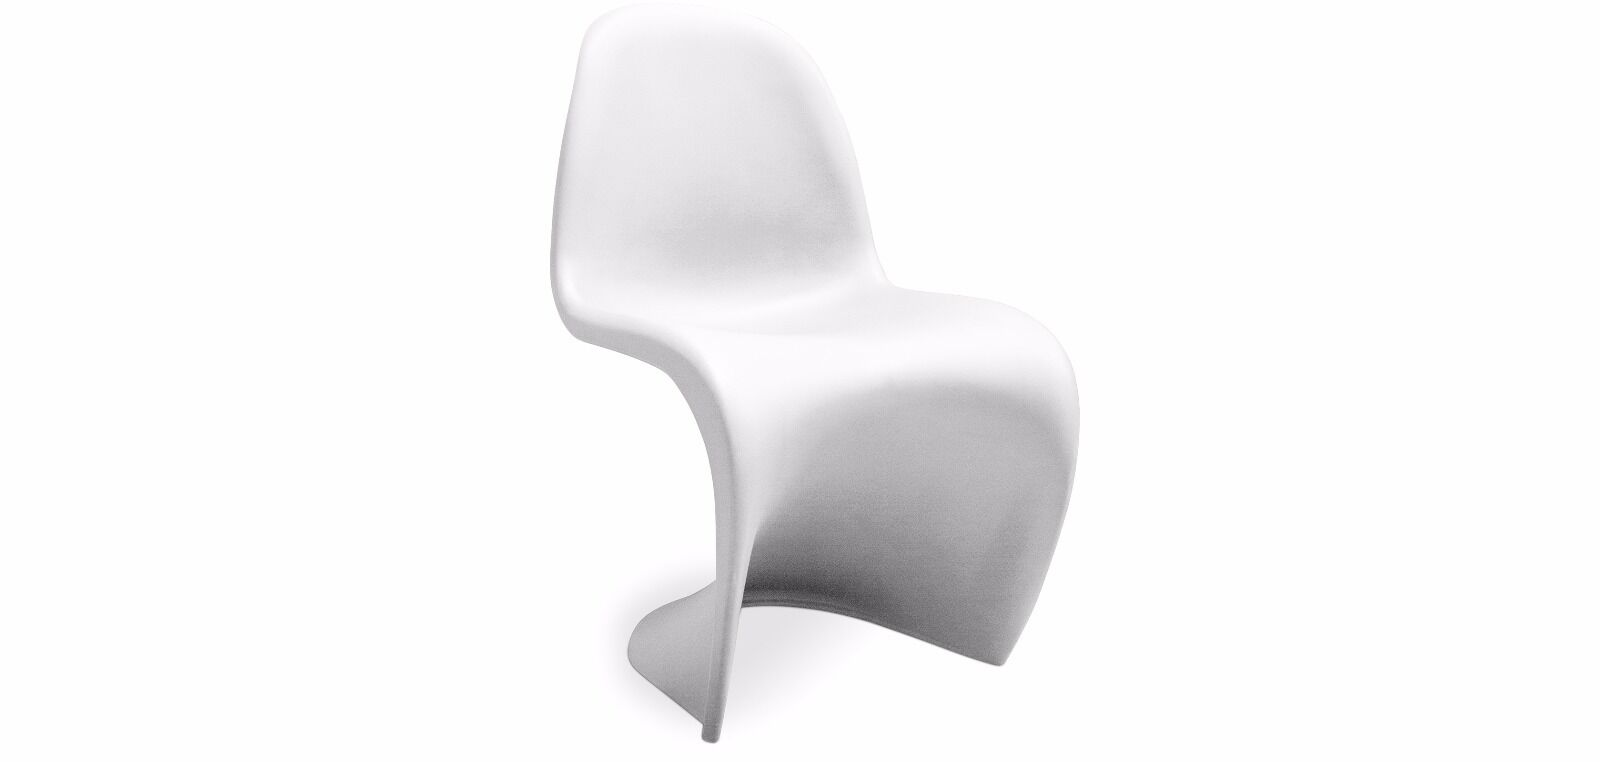 panton chair replika weiss matt kunststoff stuhl design neu eur 70 00 picclick de. Black Bedroom Furniture Sets. Home Design Ideas